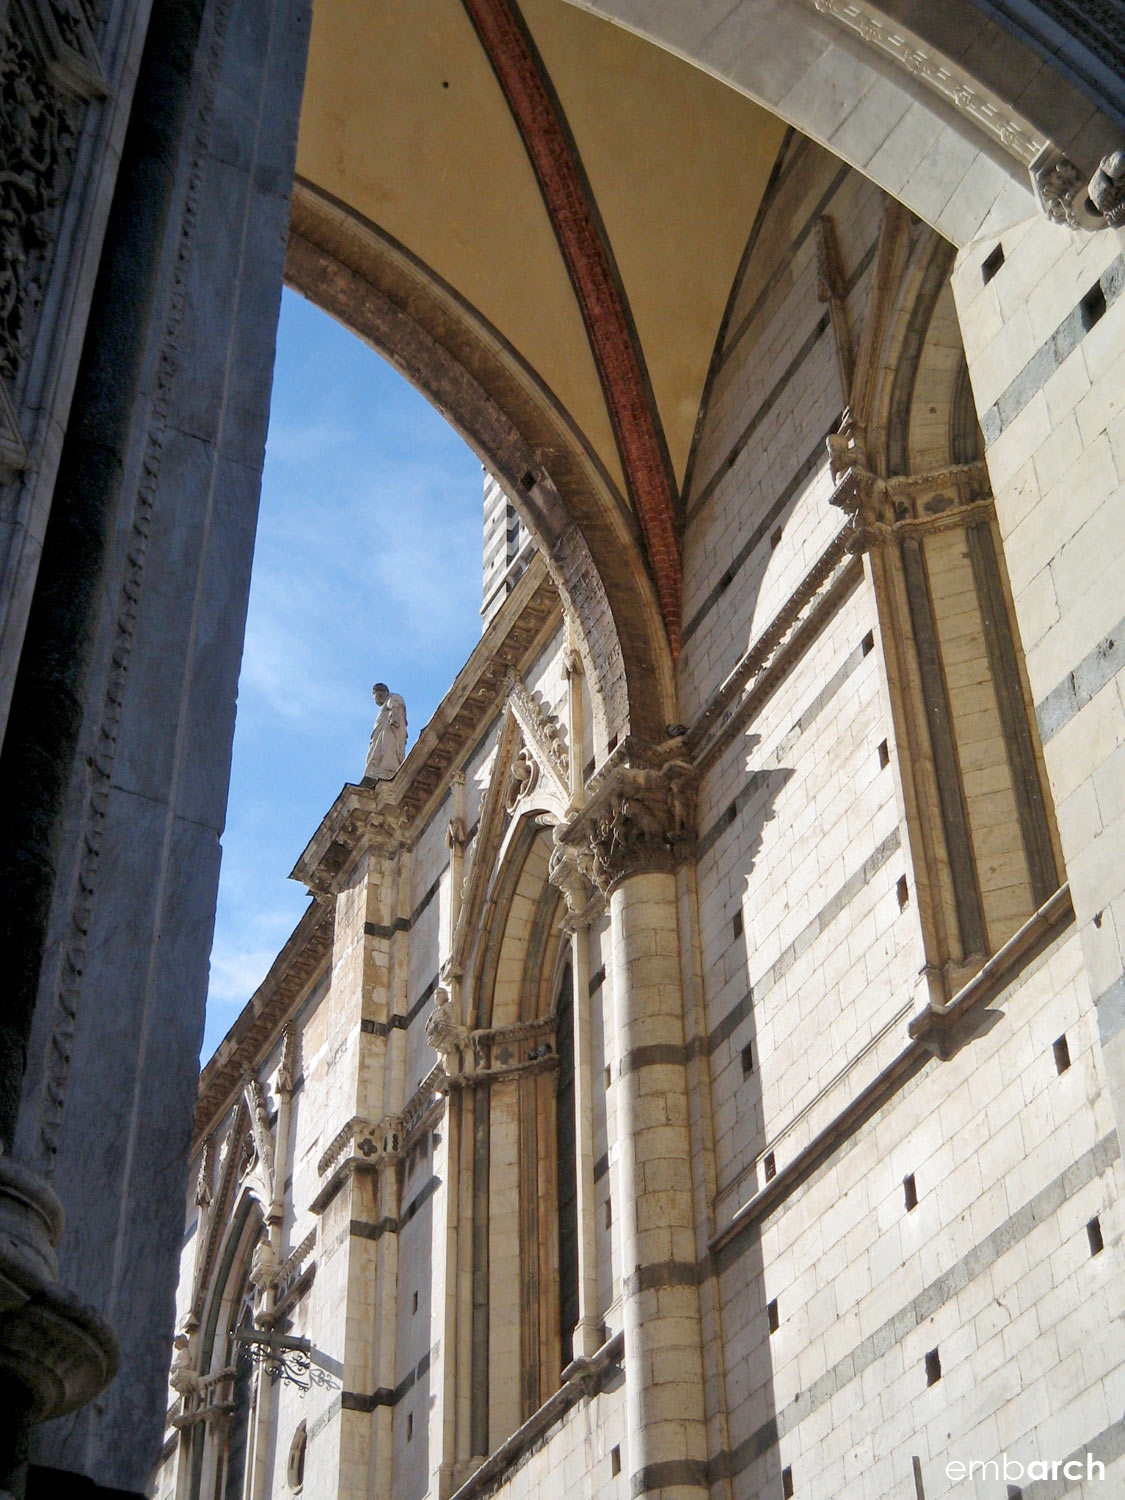 Siena Cathedral - exterior detail